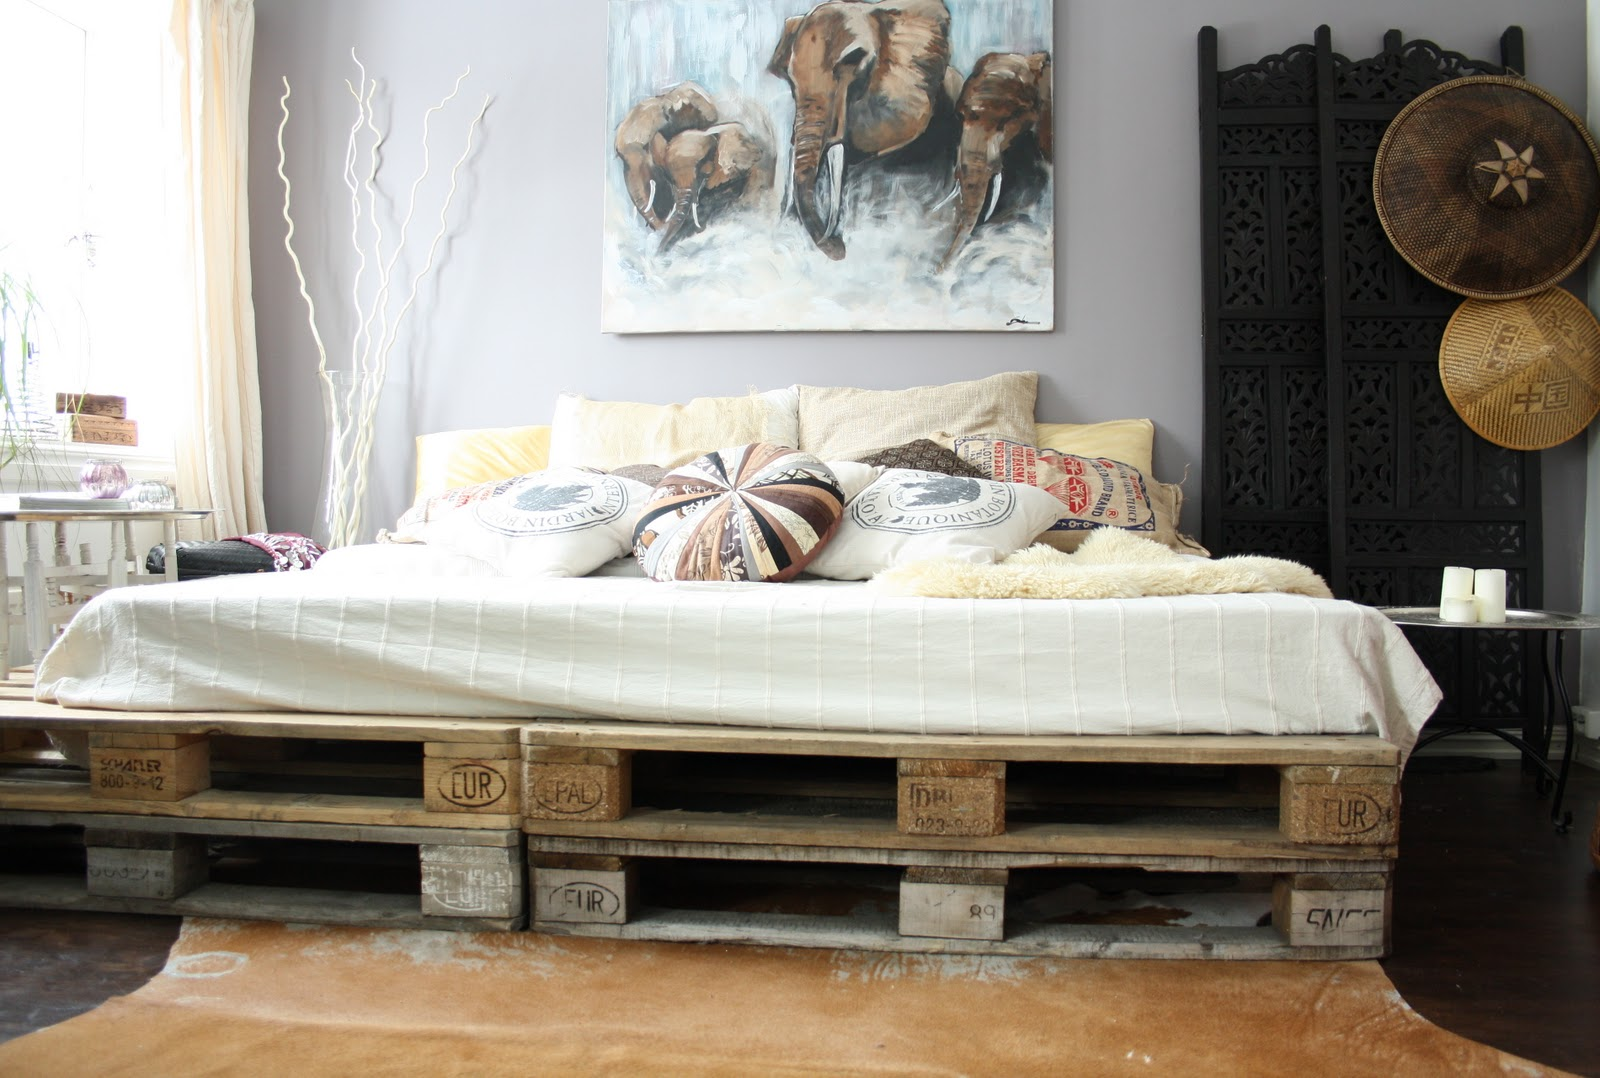 Cheap bed frame furniture from pallet diy decoration painting elephants shabby